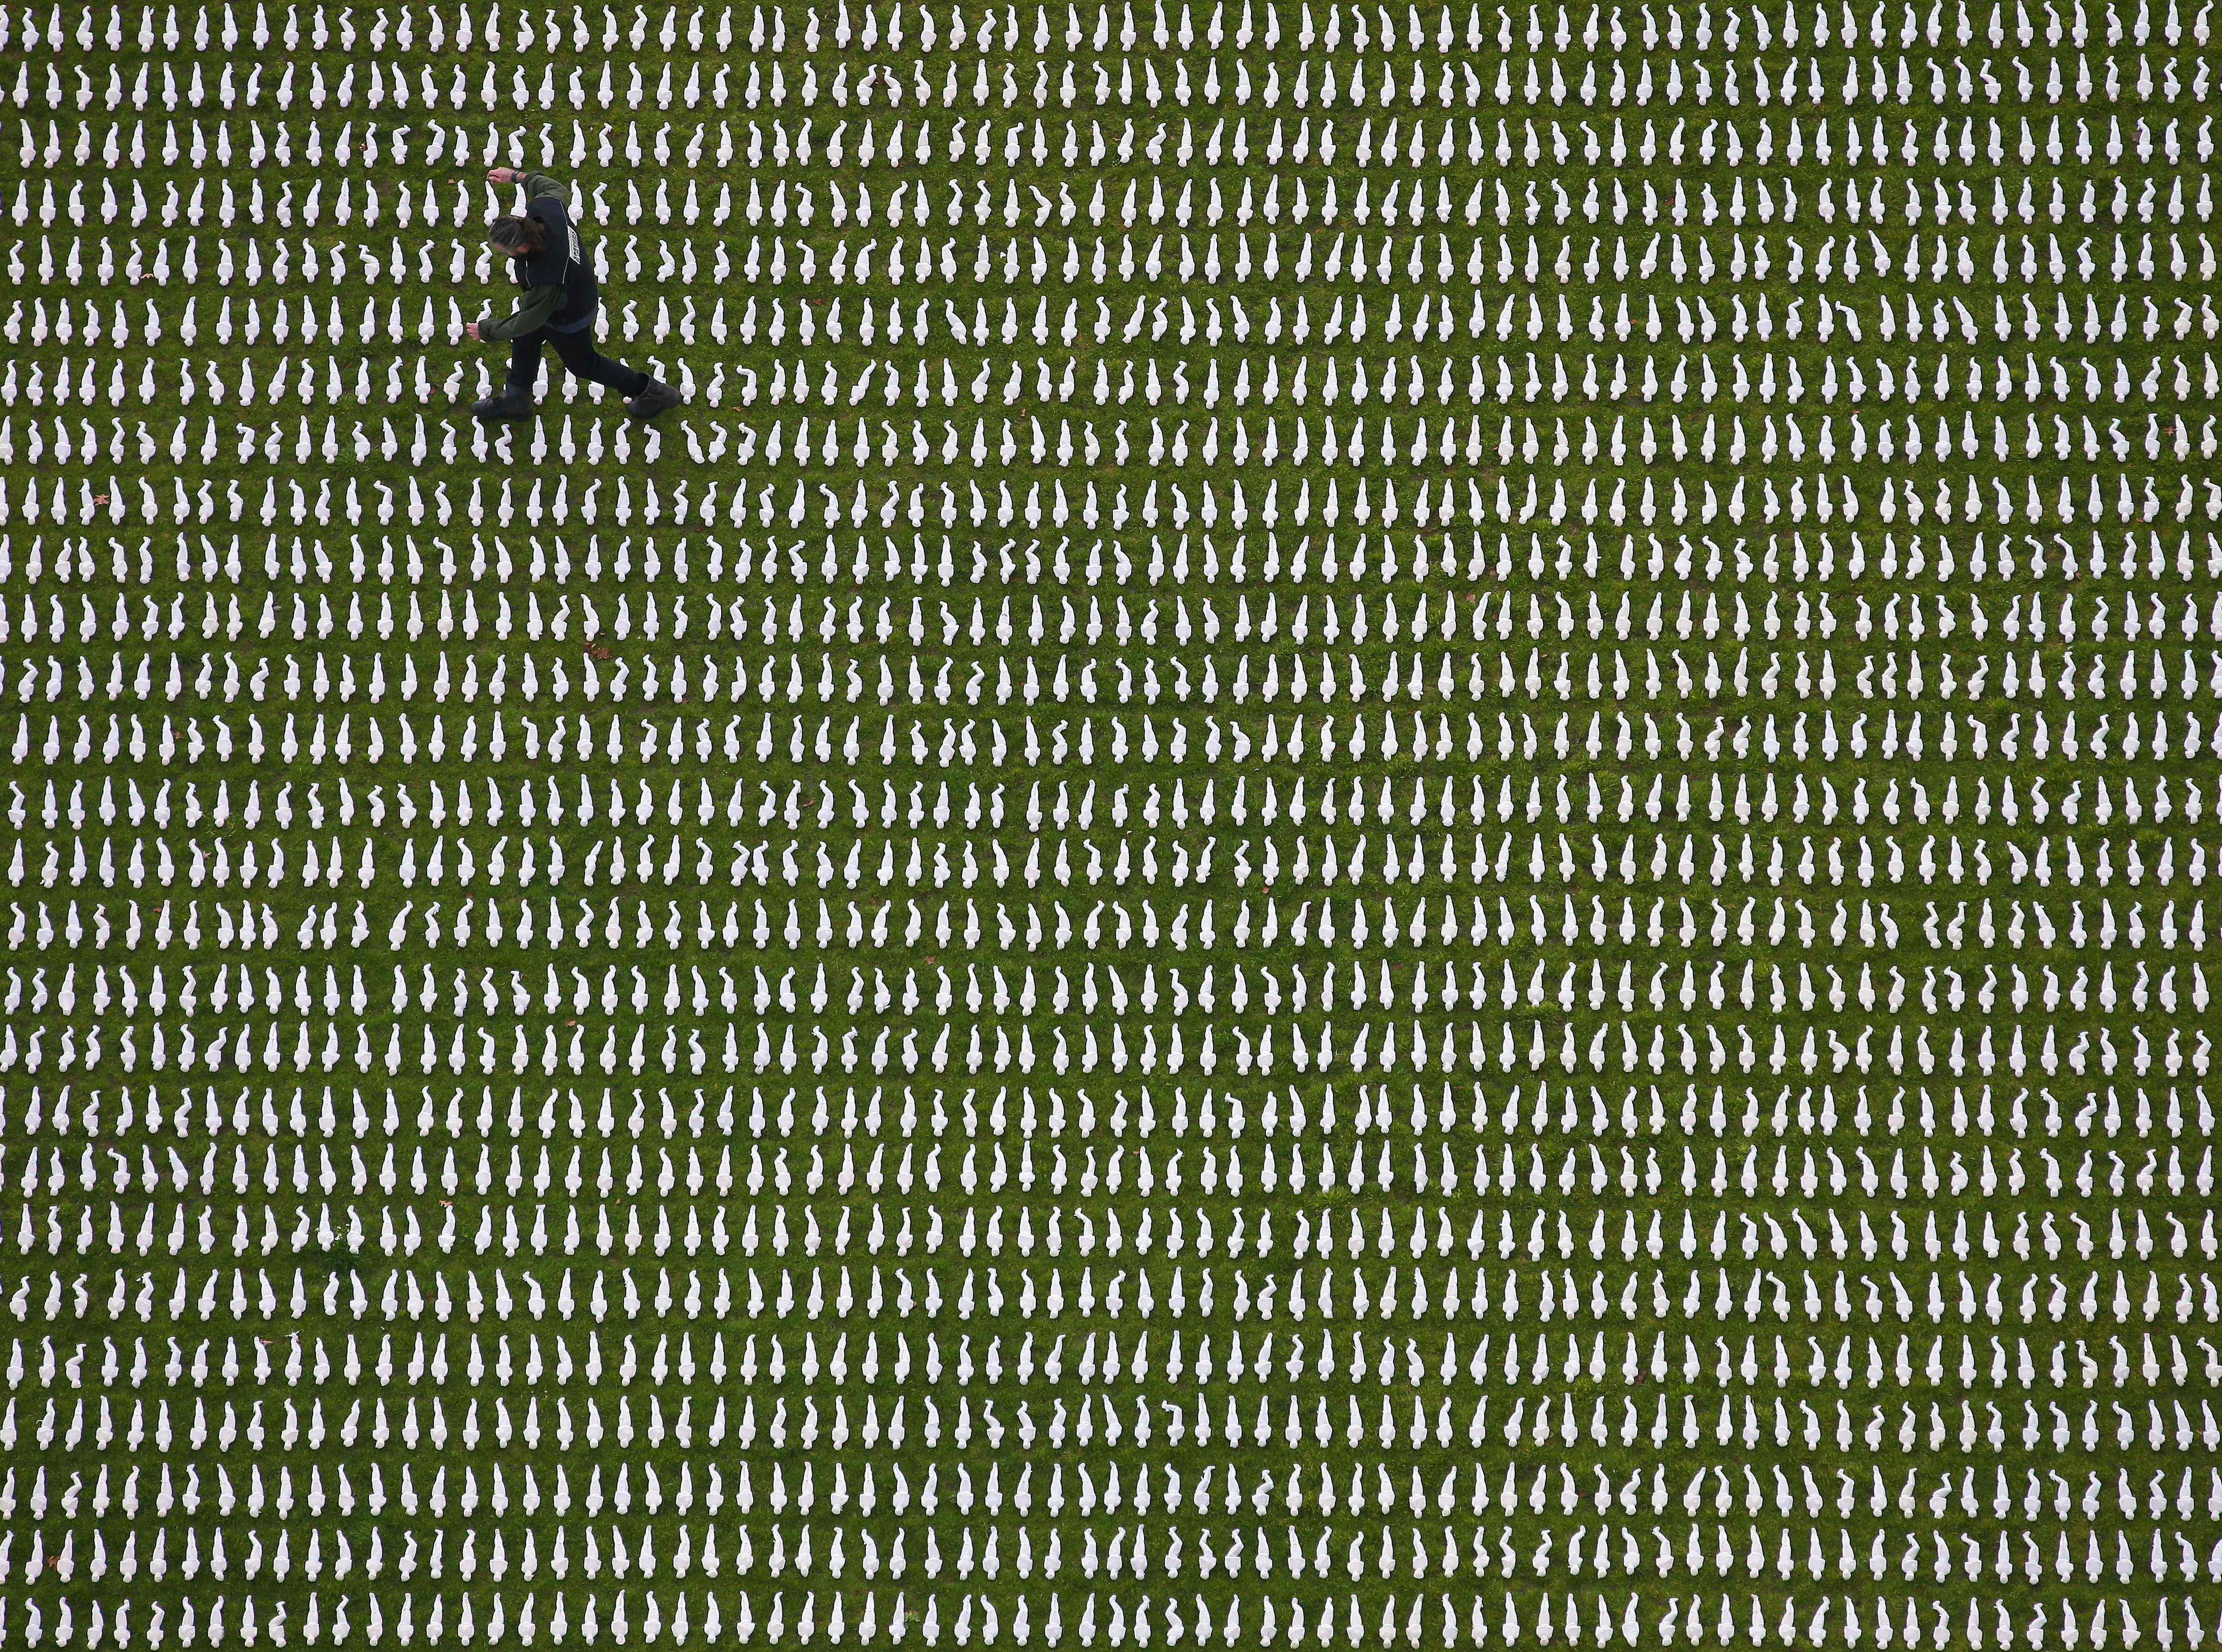 """British artist Rob Heard poses for a photograph amongst 72,396 shrouded figures, which form his installation """"Shrouds of the Somme"""", laid out at the Queen Elizabeth Olympic Park in London on Nov. 7, 2018, to represent Commonwealth servicemen who died at the Somme, and who have no known grave. The 12-inch shrouded figures have been laid out by volunteers and members of the British Army's 1 Royal Anglian Regiment to mark the 100th anniversary of the end of the First World War."""